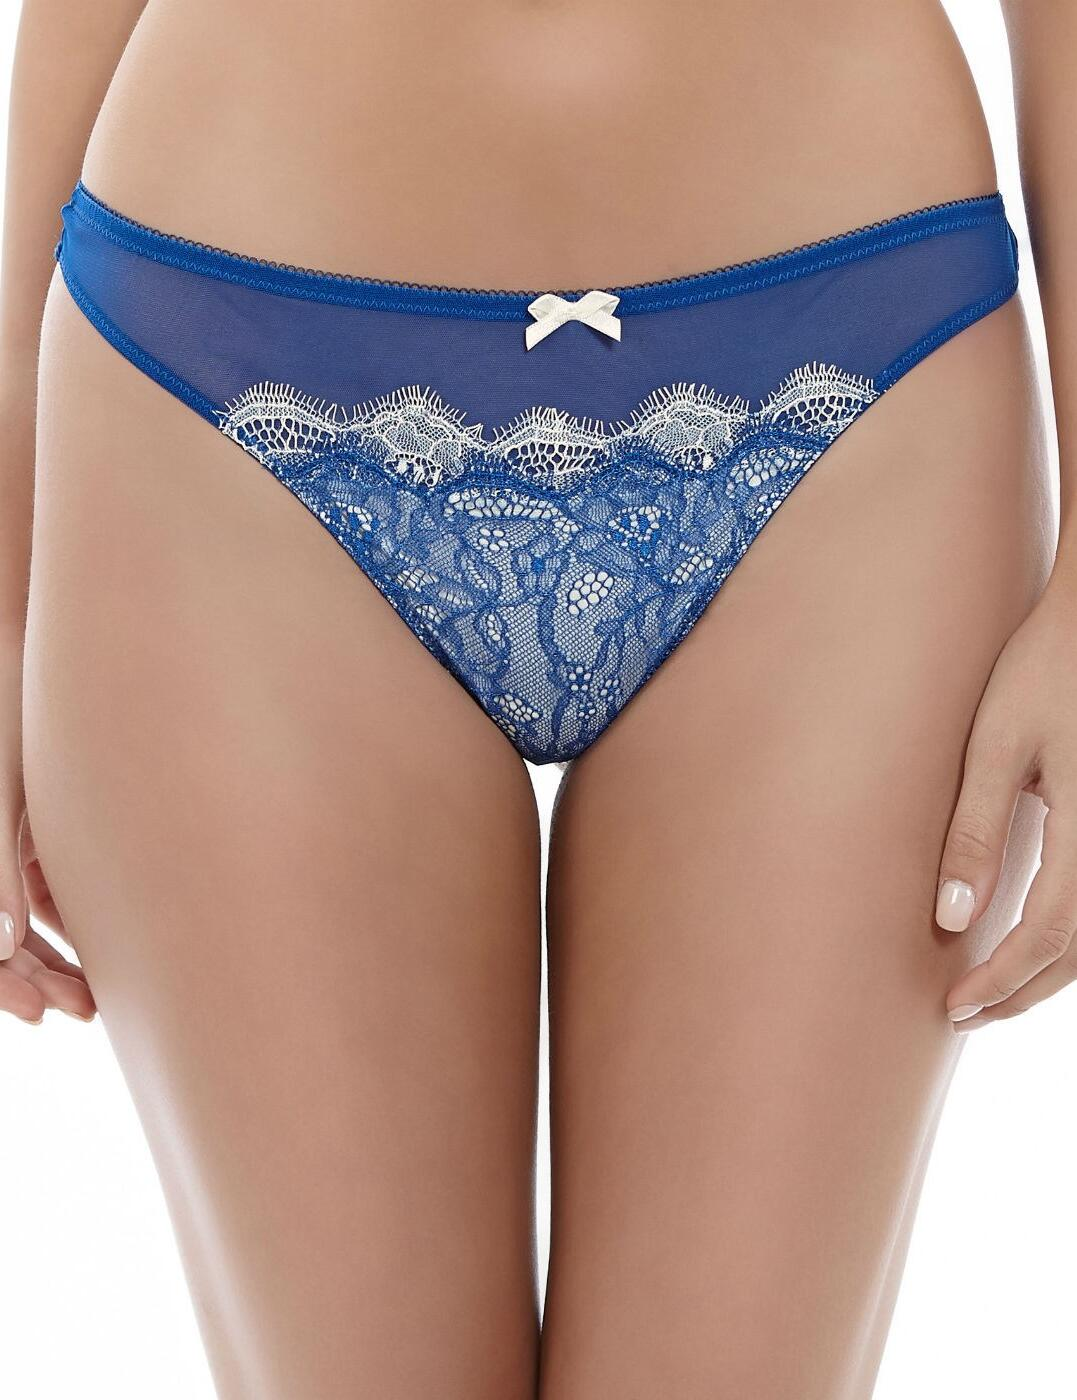 942261 B.tempt'd B.Sultry Thong  - 942261 Deepsea Blue/Ivory